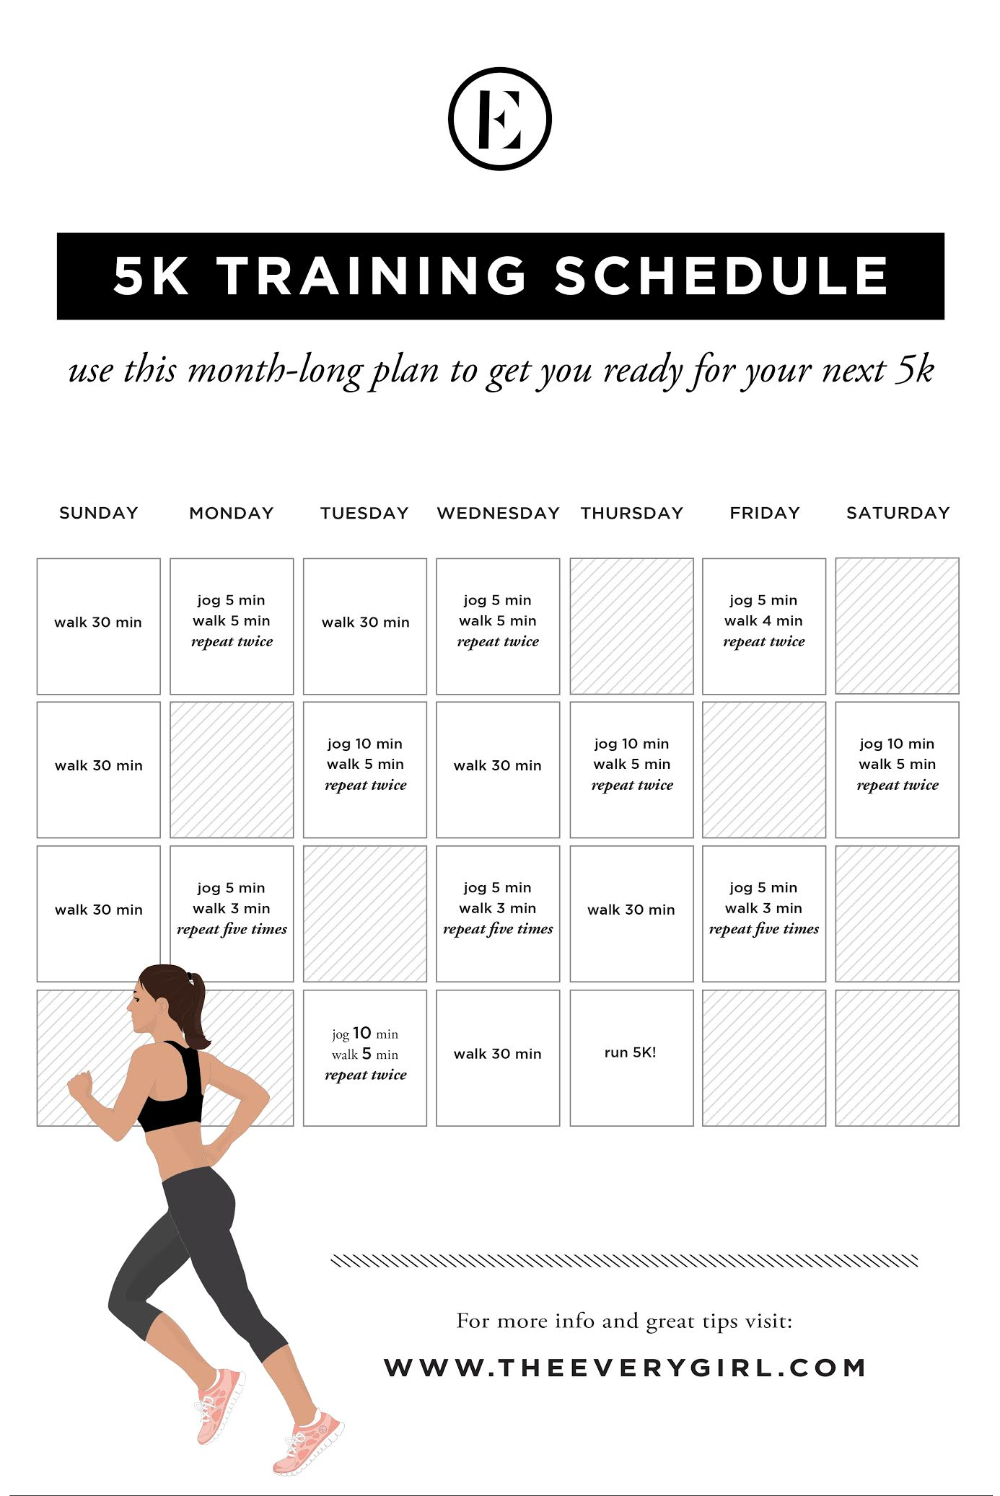 Your Ultimate 5k Training Plan and Tips from An Expert - The Everygirl